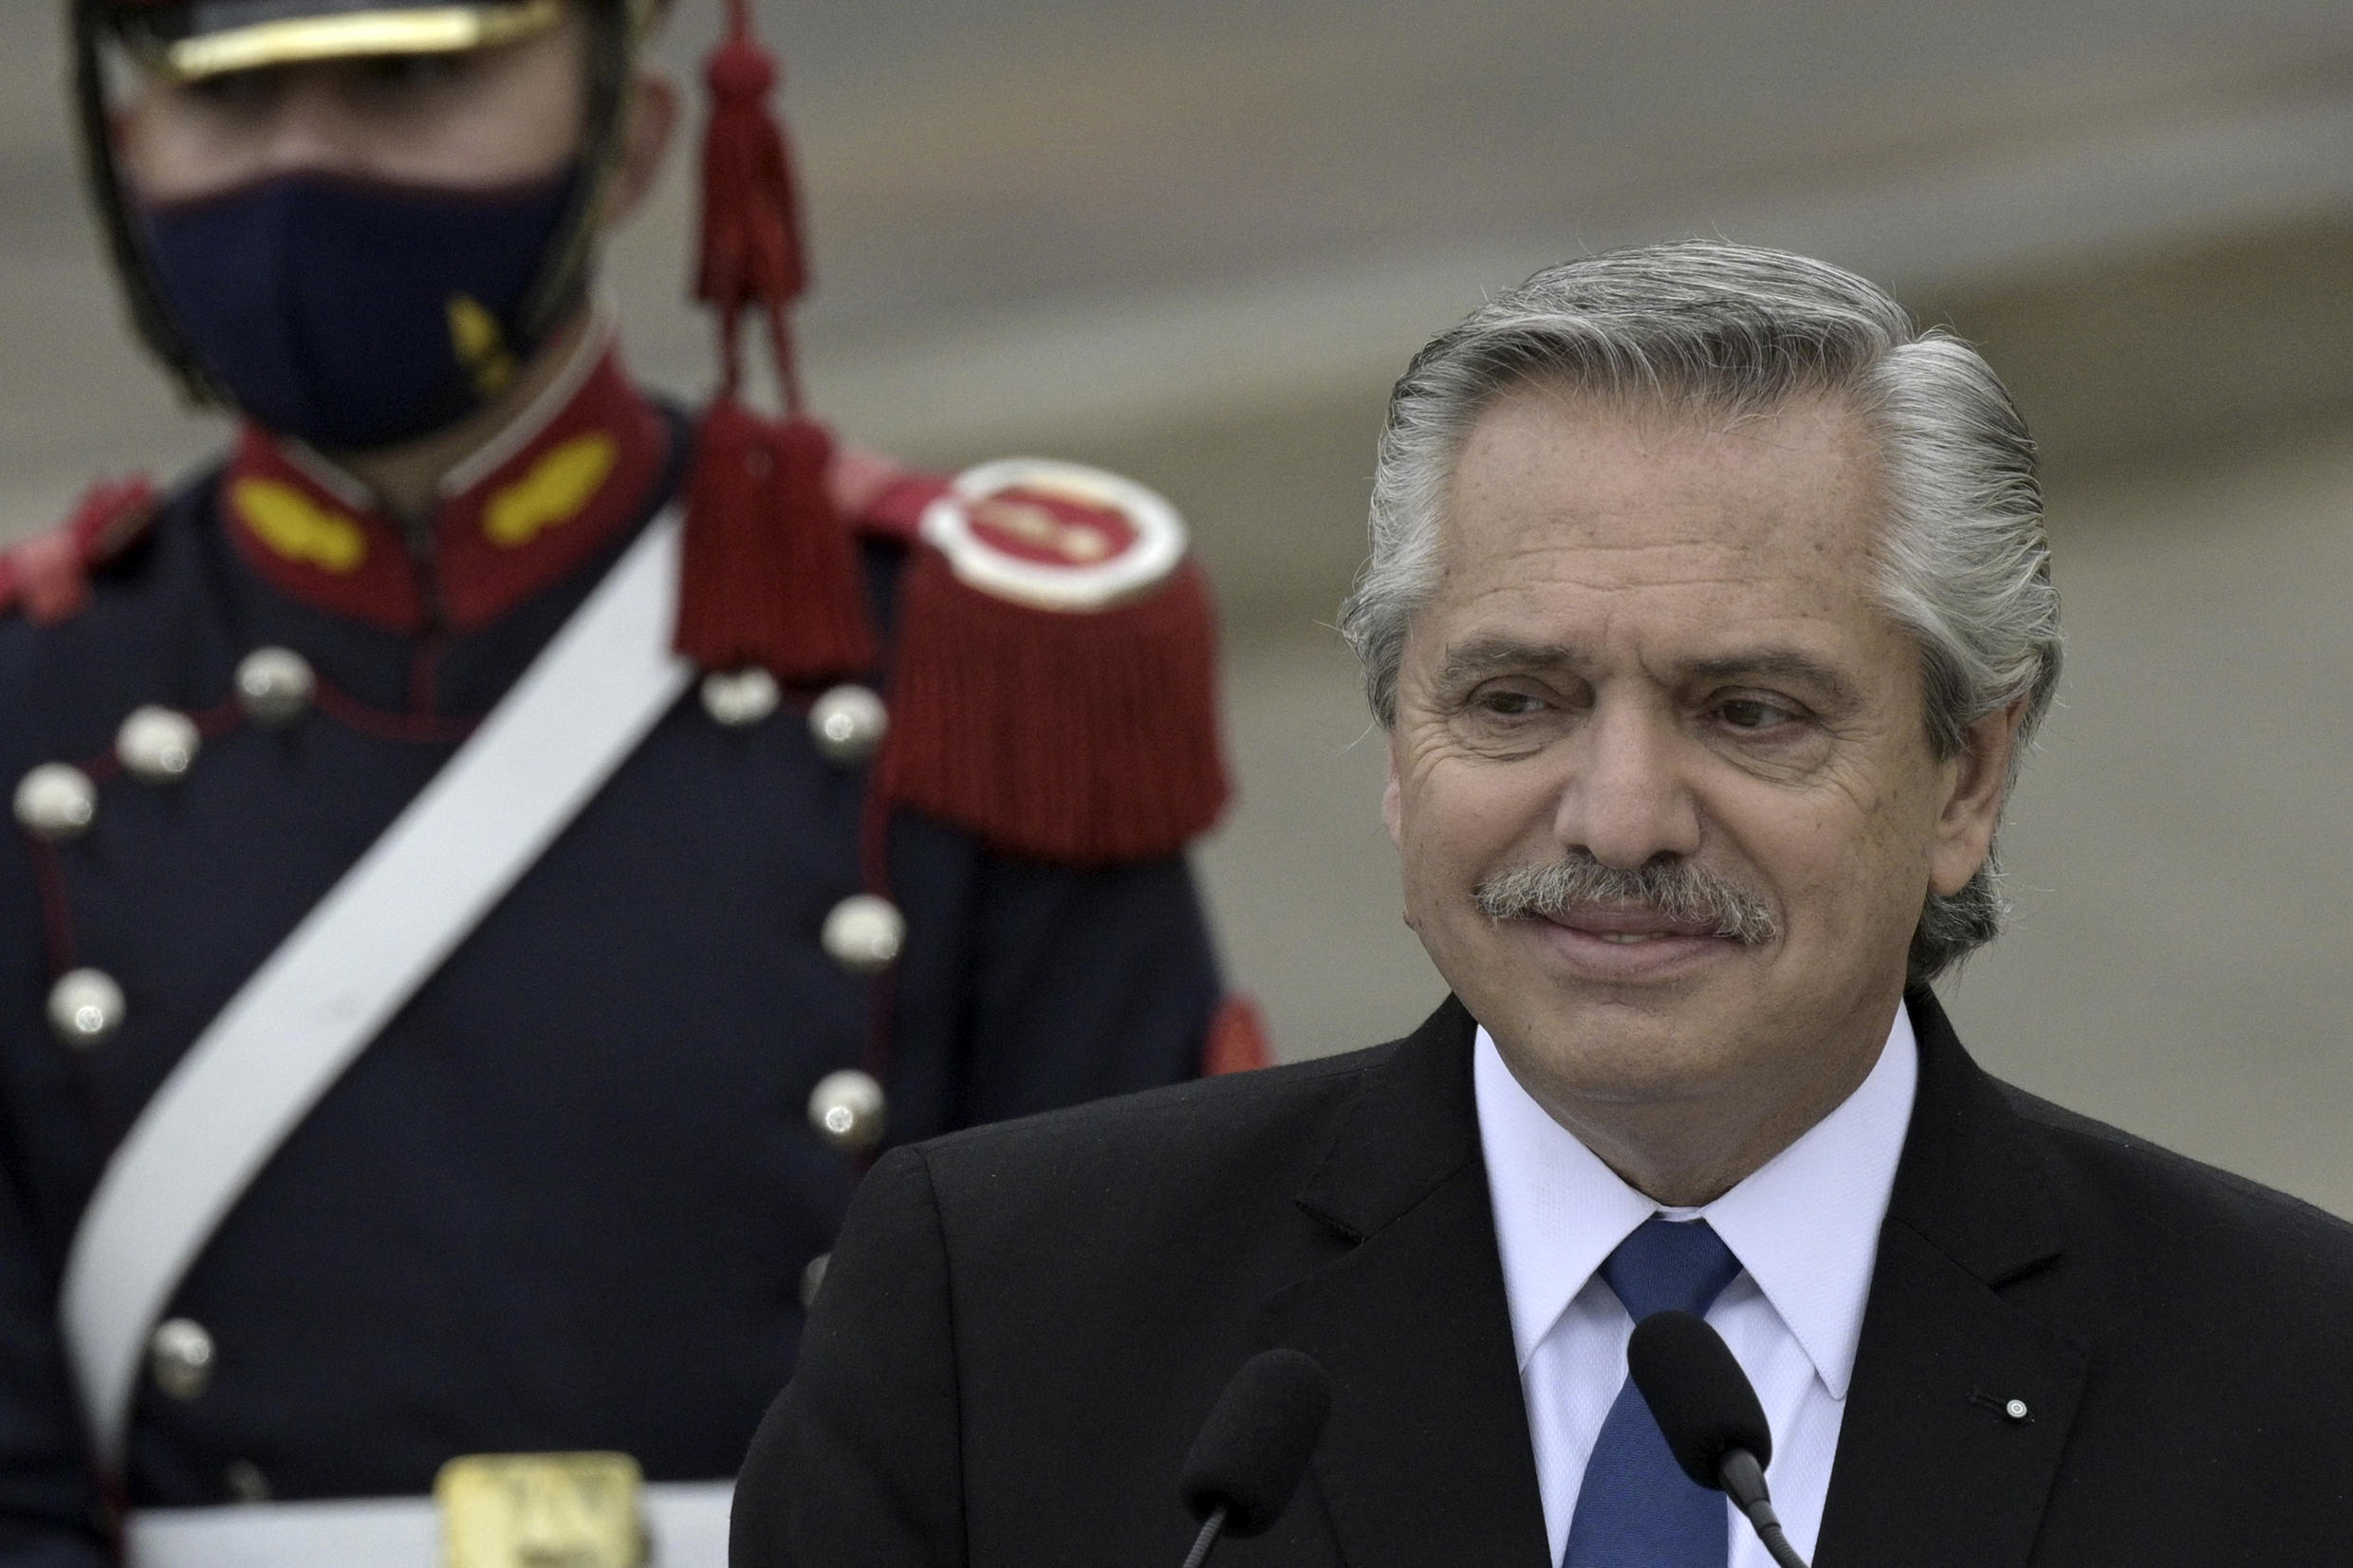 Argentina's President Alberto Fernandez is seen during a press conference in Buenos Aires on June 9, 2021